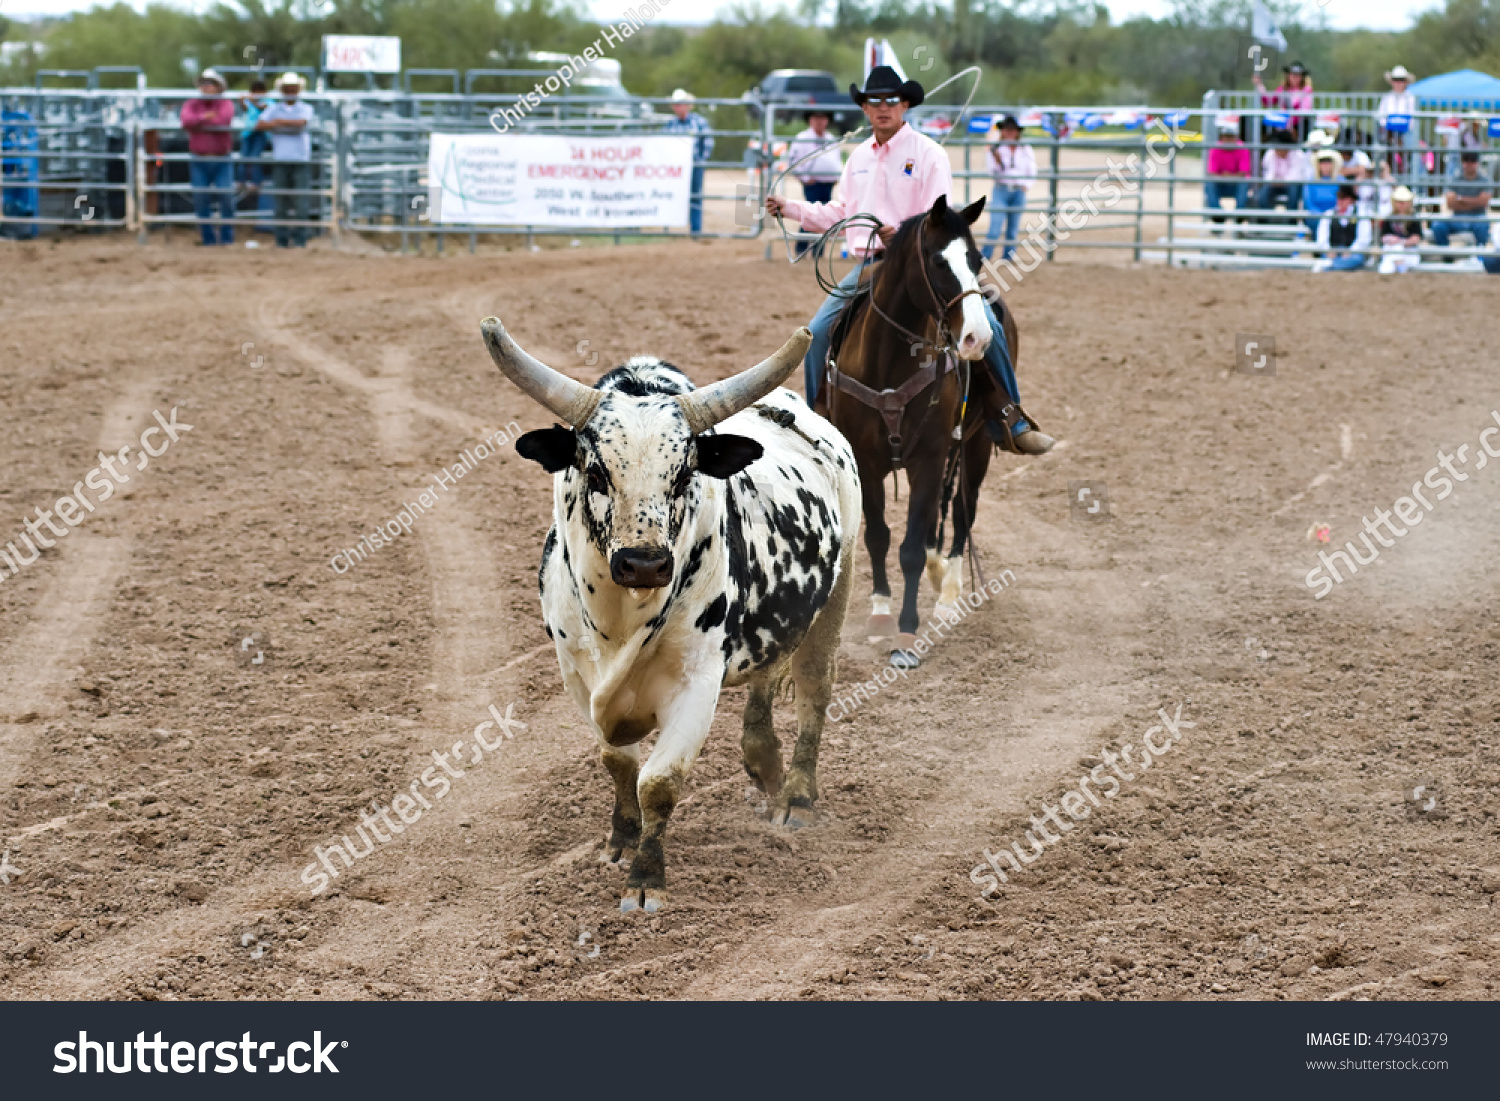 Apache Junction Az February 26 A Rodeo Pick Up Man